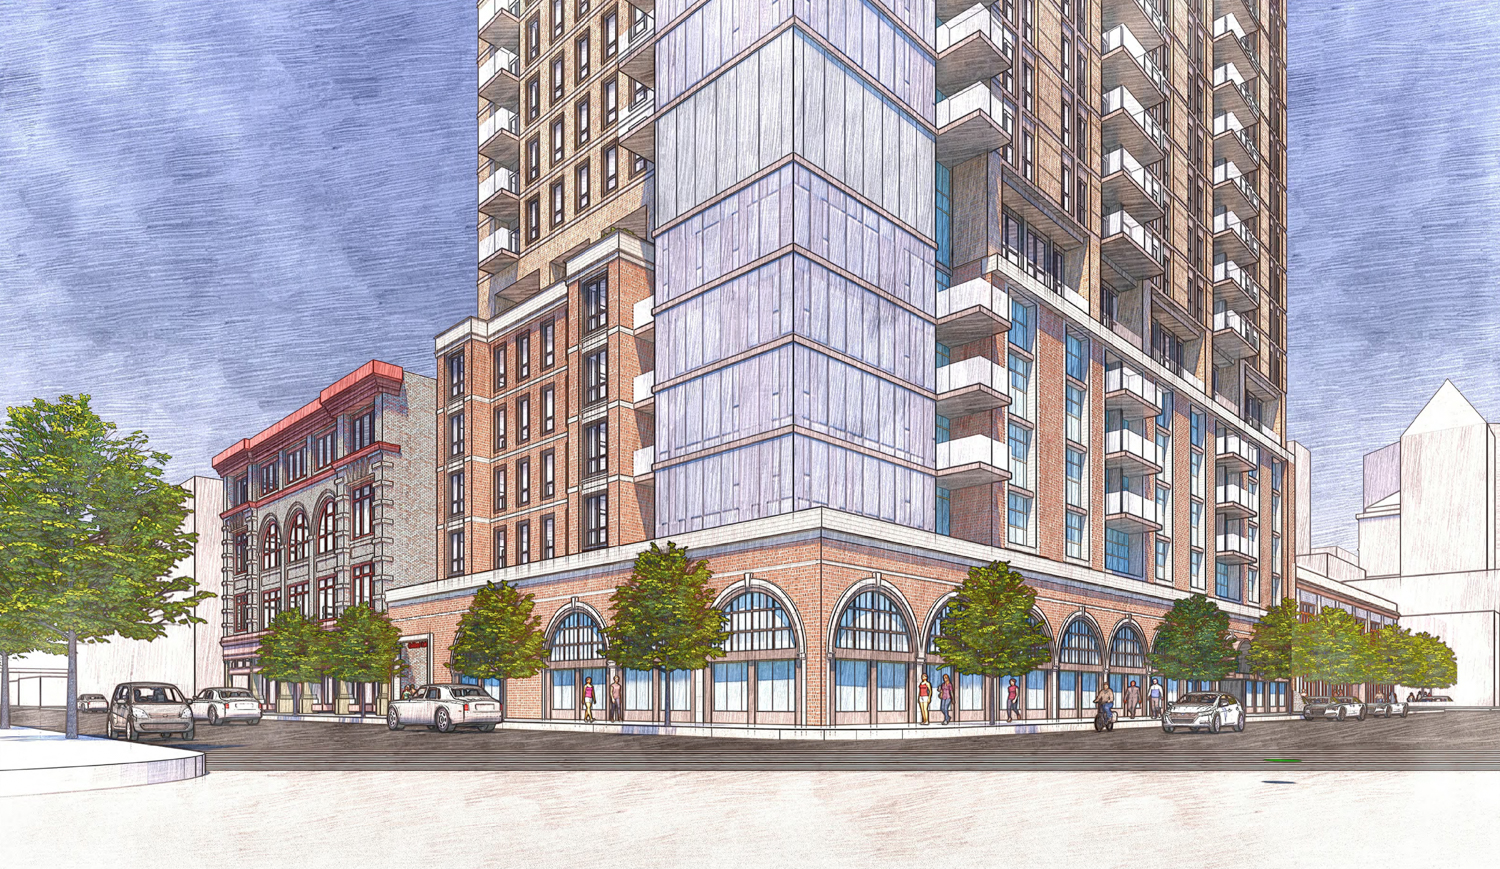 1261 Harrison Street podium viewed from the Harrison and 13th Street intersection, rendering by Heller Manus Architects